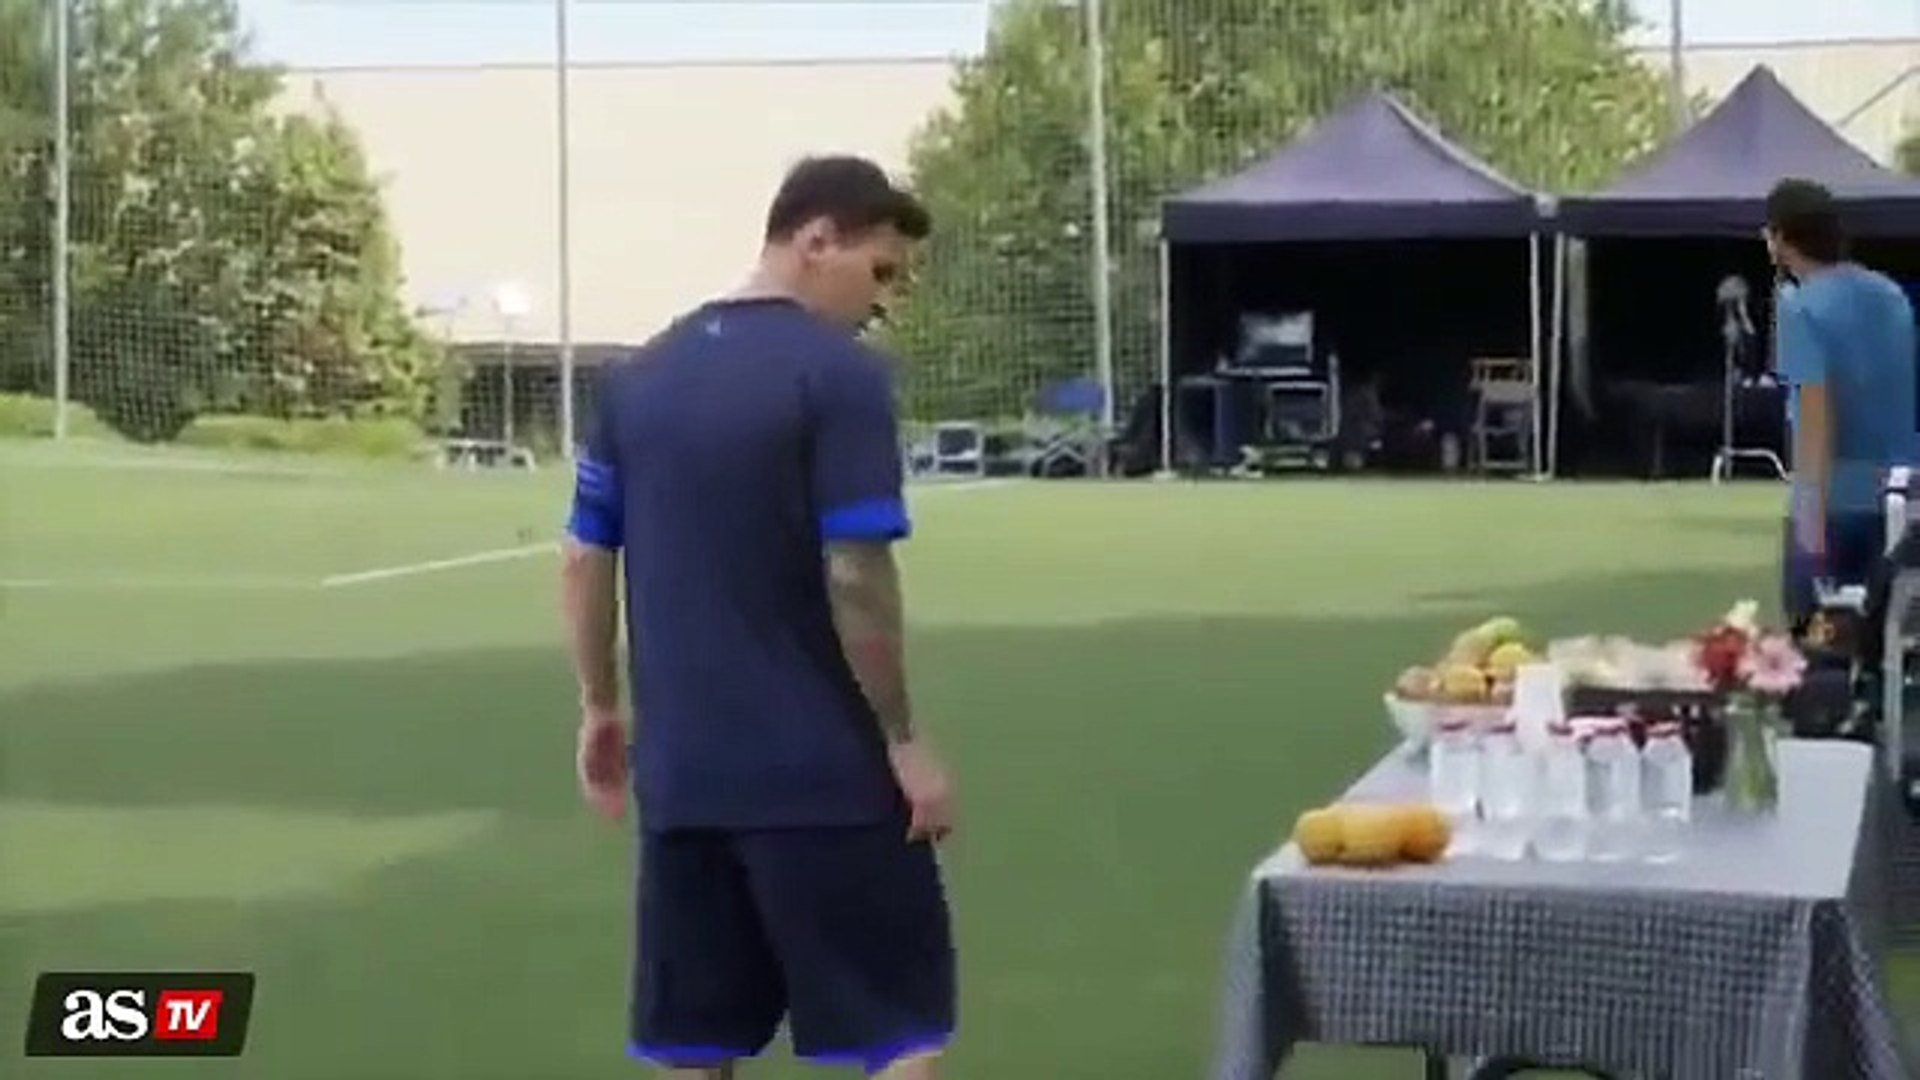 Messi doing keepy uppies with an orange